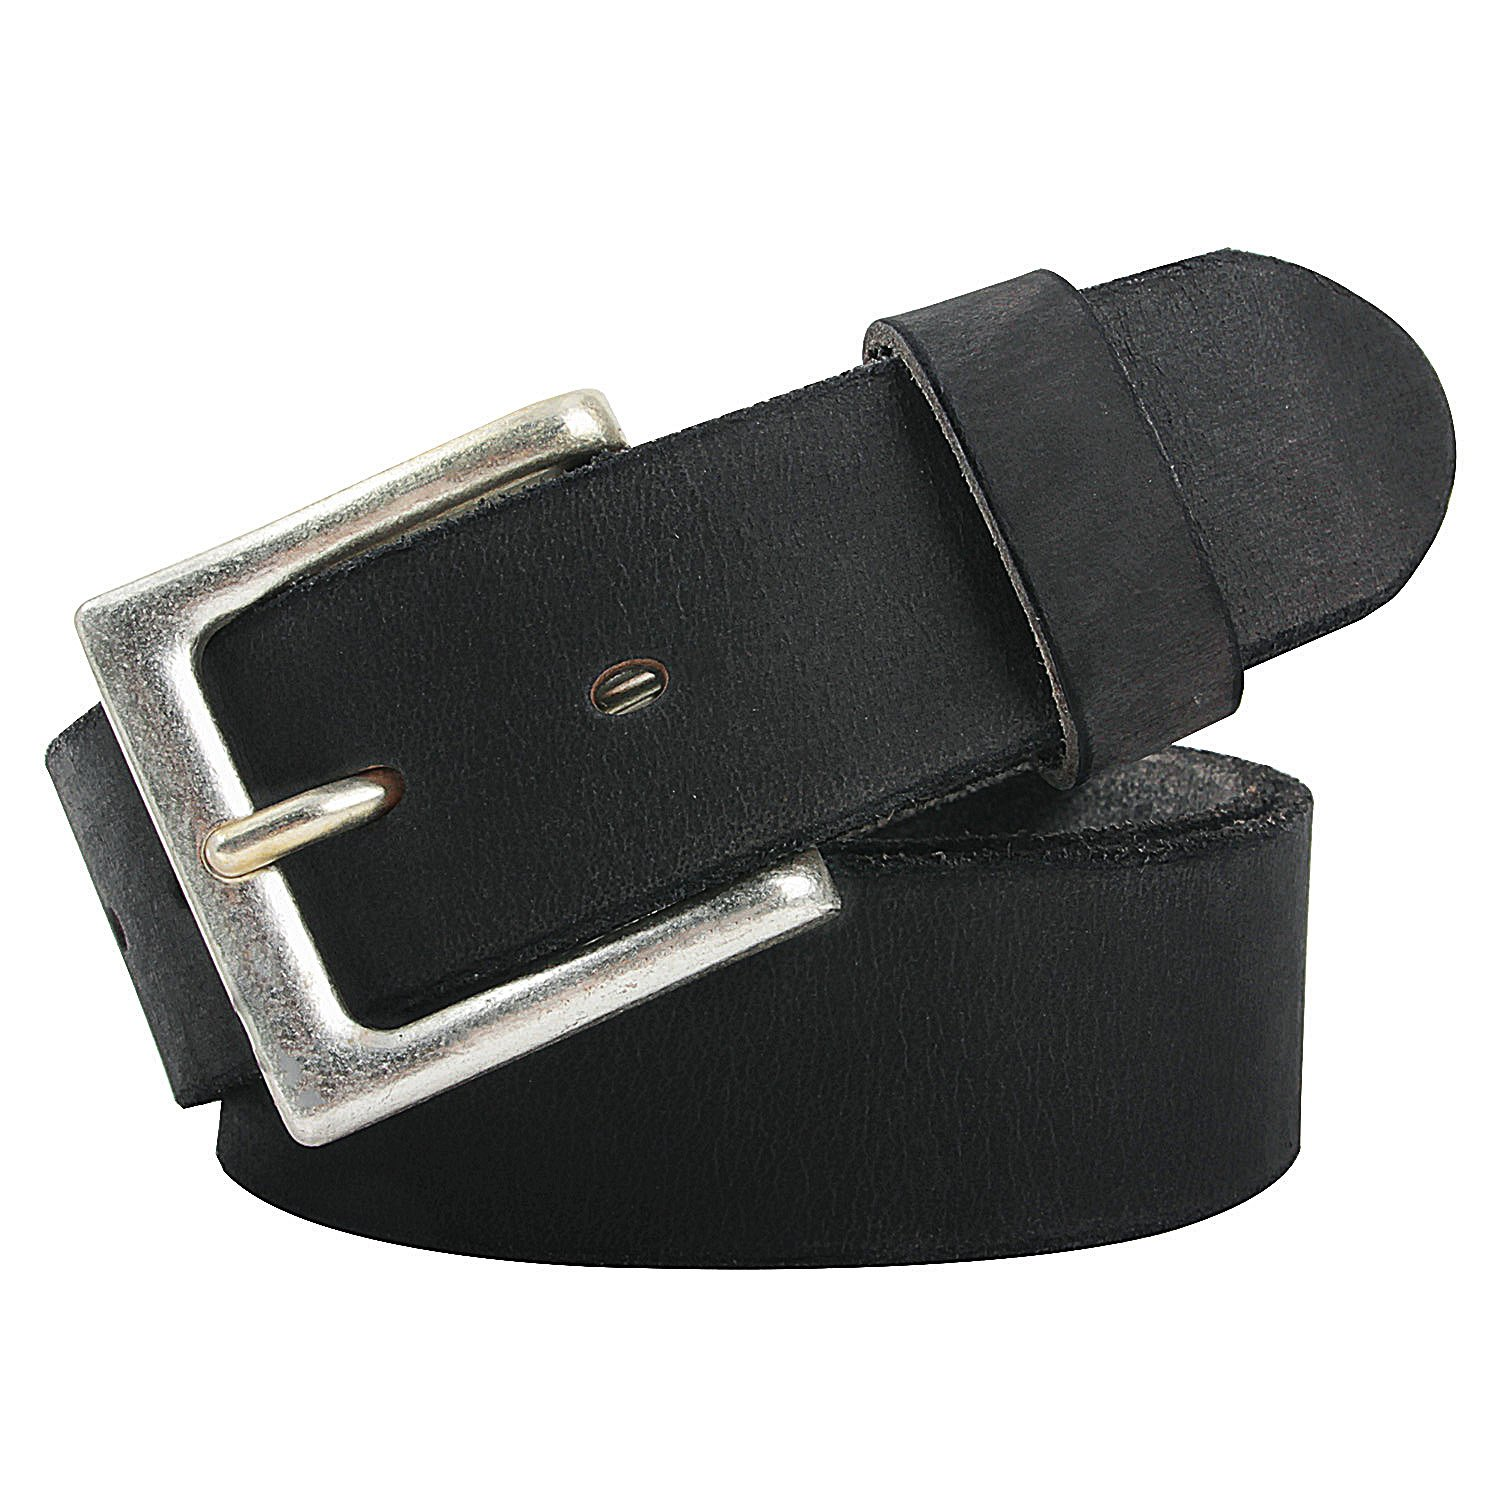 NPET Mens Leather Belt Full Grain Vintage Distressed Style Snap on Strap 1 1/2'' Wide (44 for 42'' waist, Black with Silver Buckle)